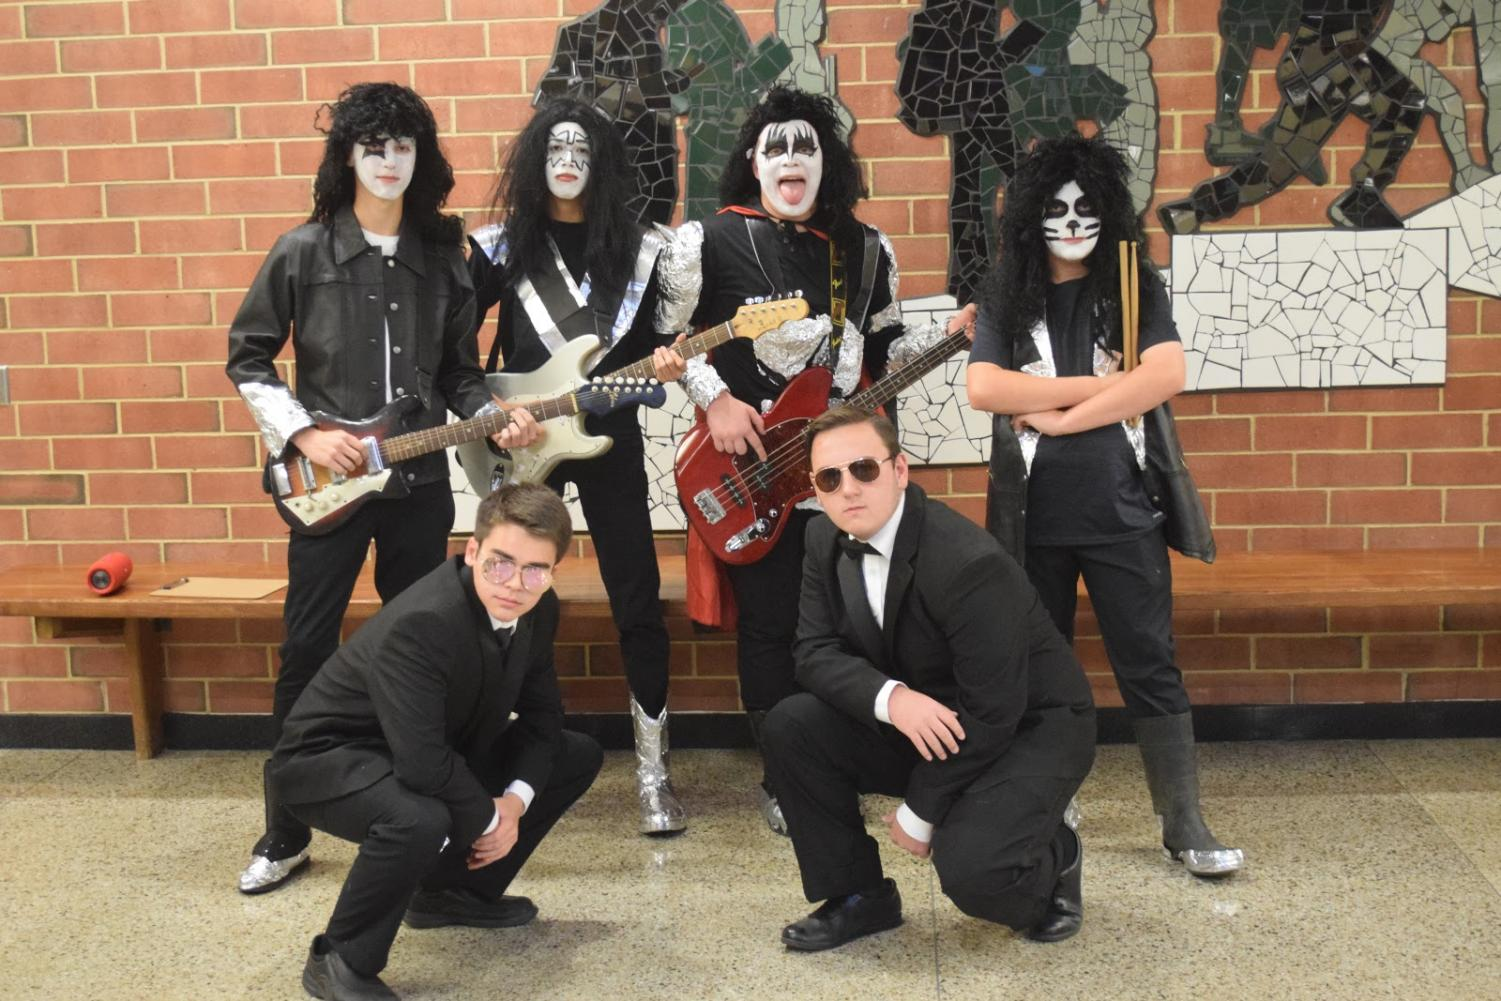 Getting into the Halloween spirit, Jacob Troupe (11), Nick Alfree (11), Patrick Hicks (11), Zach Slodysko (11), Dylan Poffenberger (11), and Mason Younker (11) dress up as the band KISS.